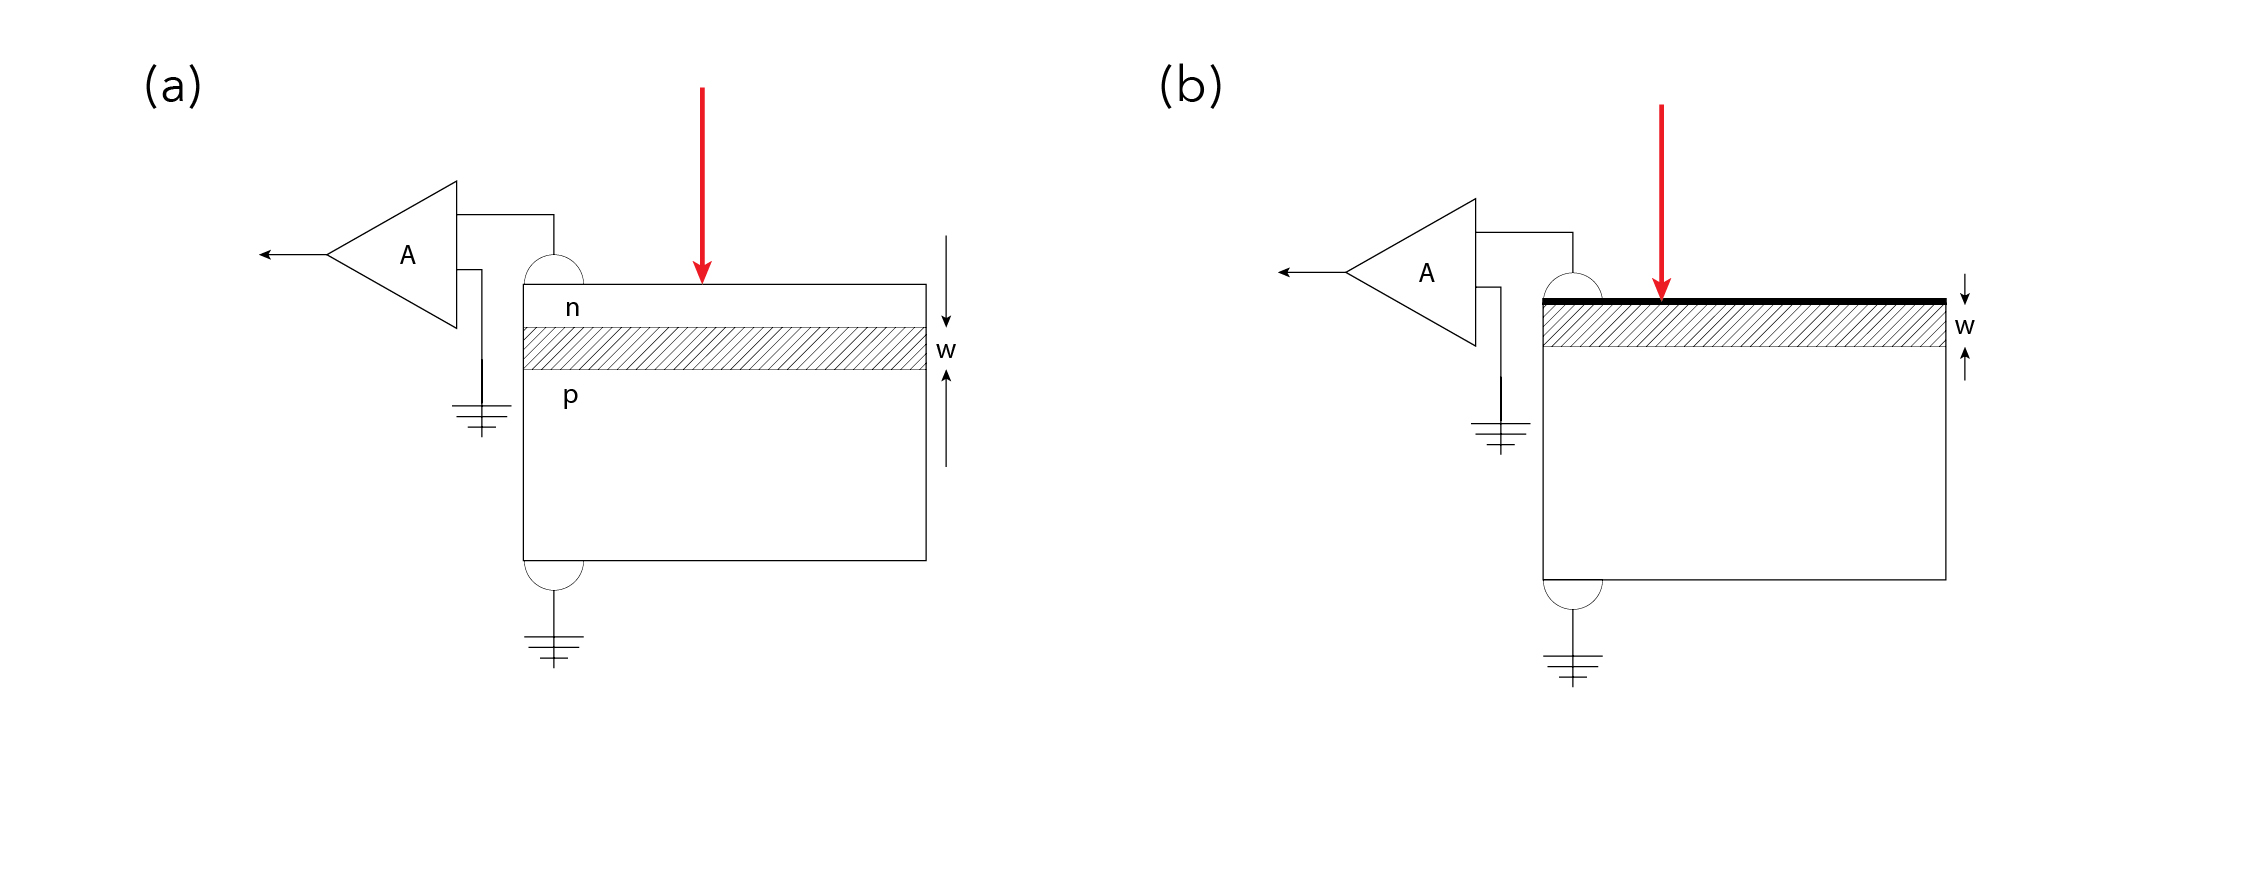 Typical EBIC circuits for imaging defects  (a)using a PN junction and (b) a Schottky junction.The built-in field aids in the collection of carriers. Defects usually appear dark and are recombination centers